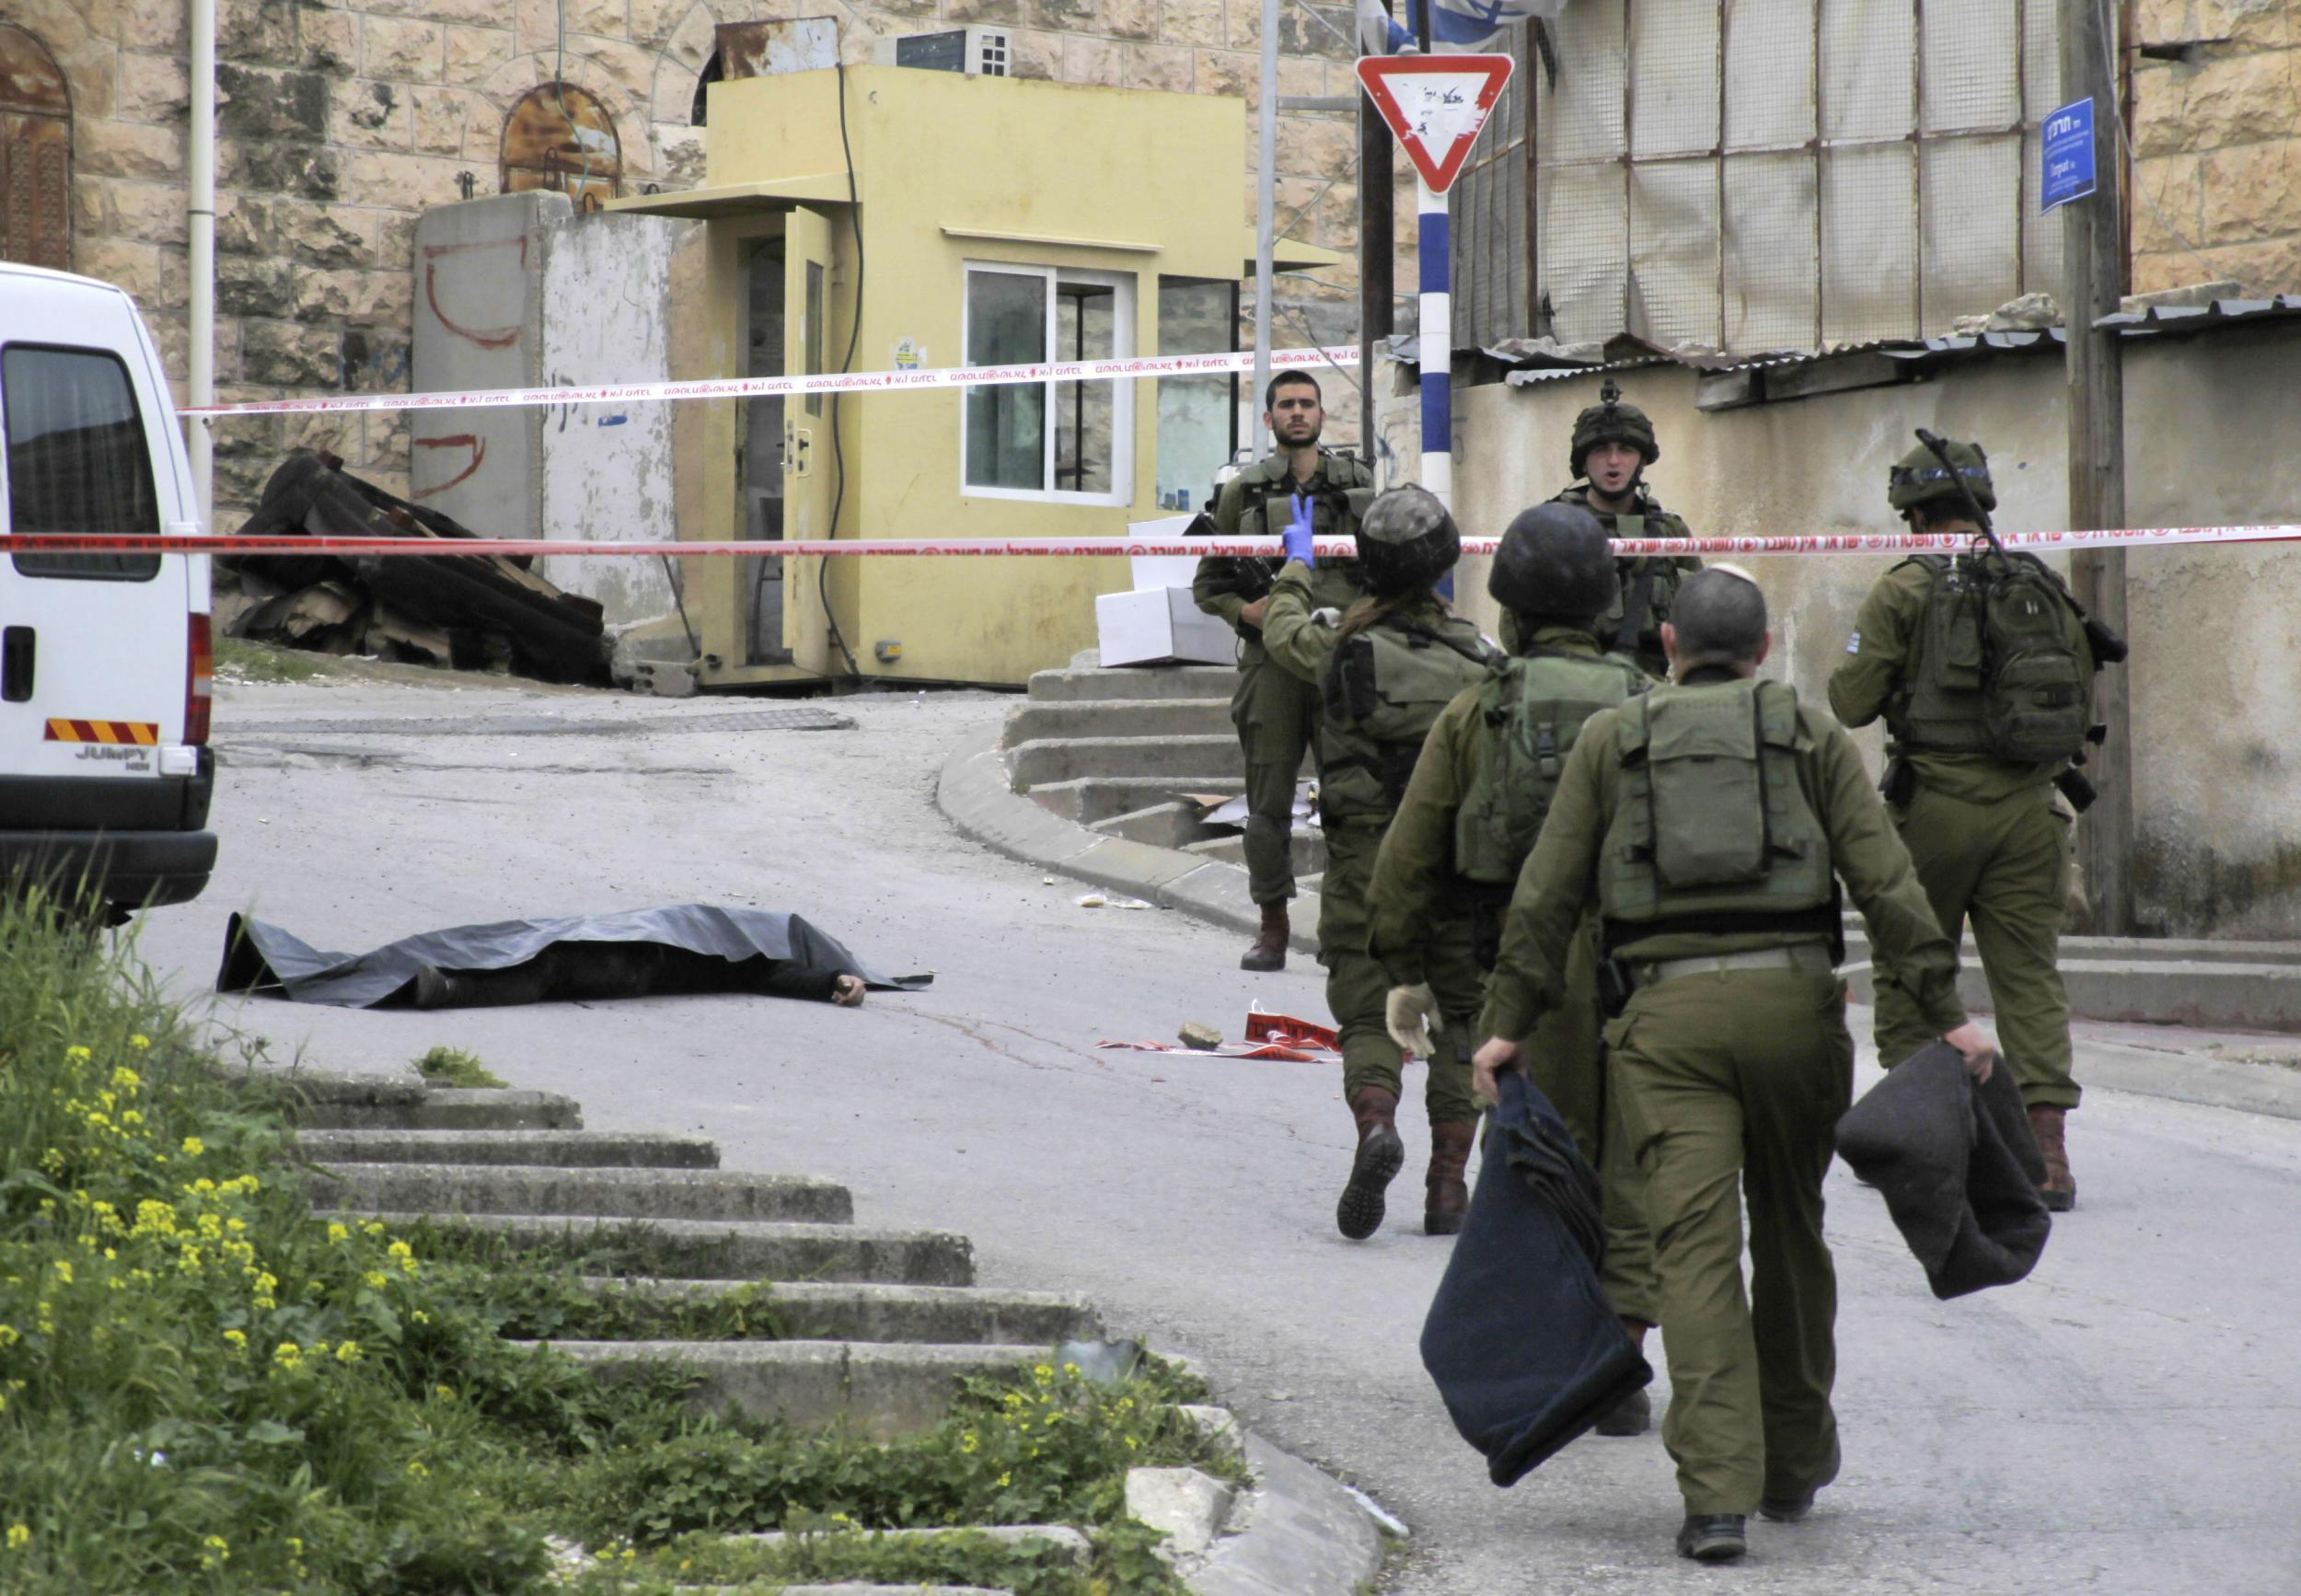 Palestinian who filmed Israeli soldier shooting disarmed man dead in Hebron receives death threats